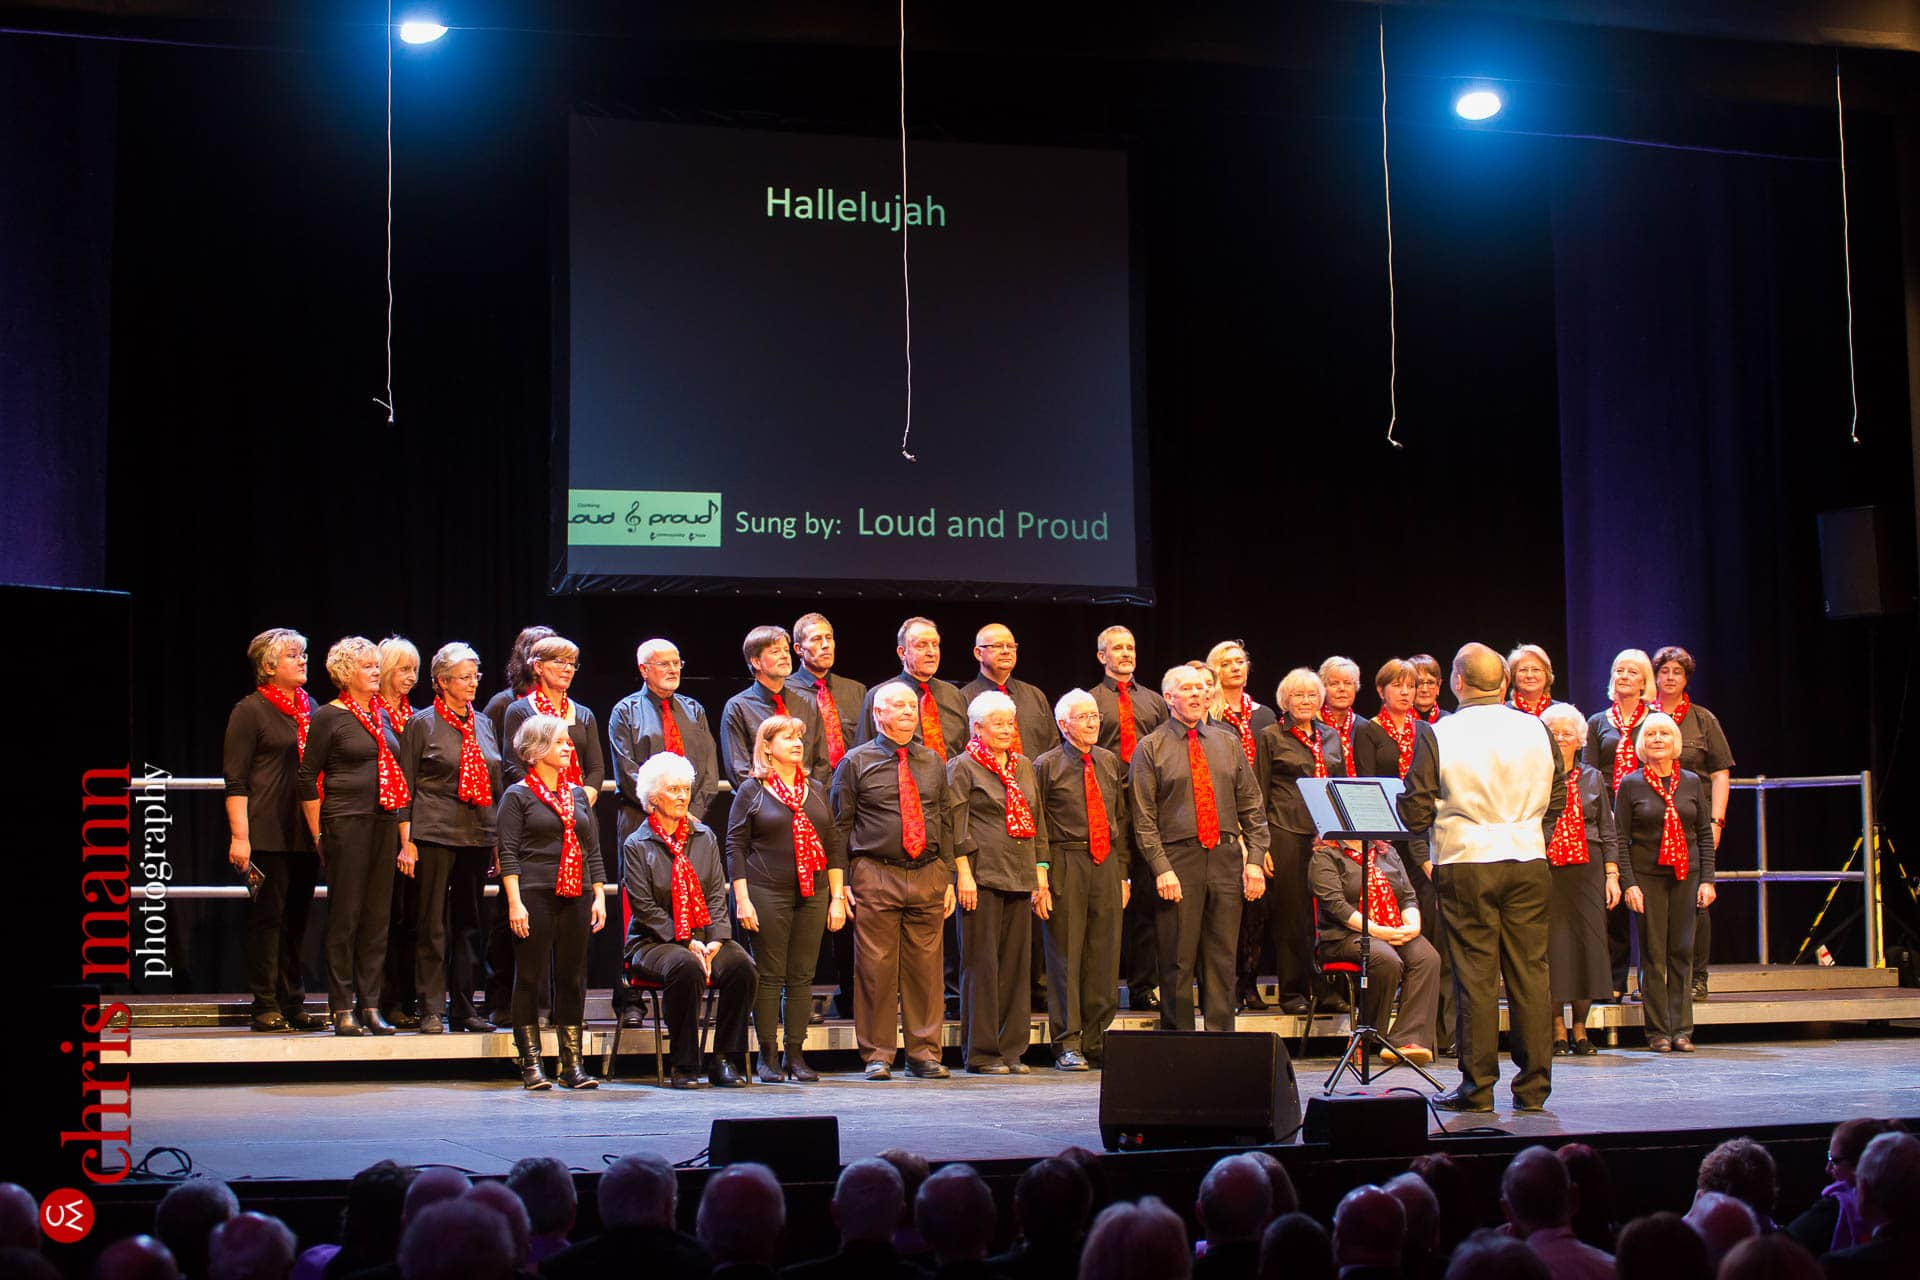 Loud and Proud choir perform Hallelujah at Choiroke 2016 concert Dorking Halls